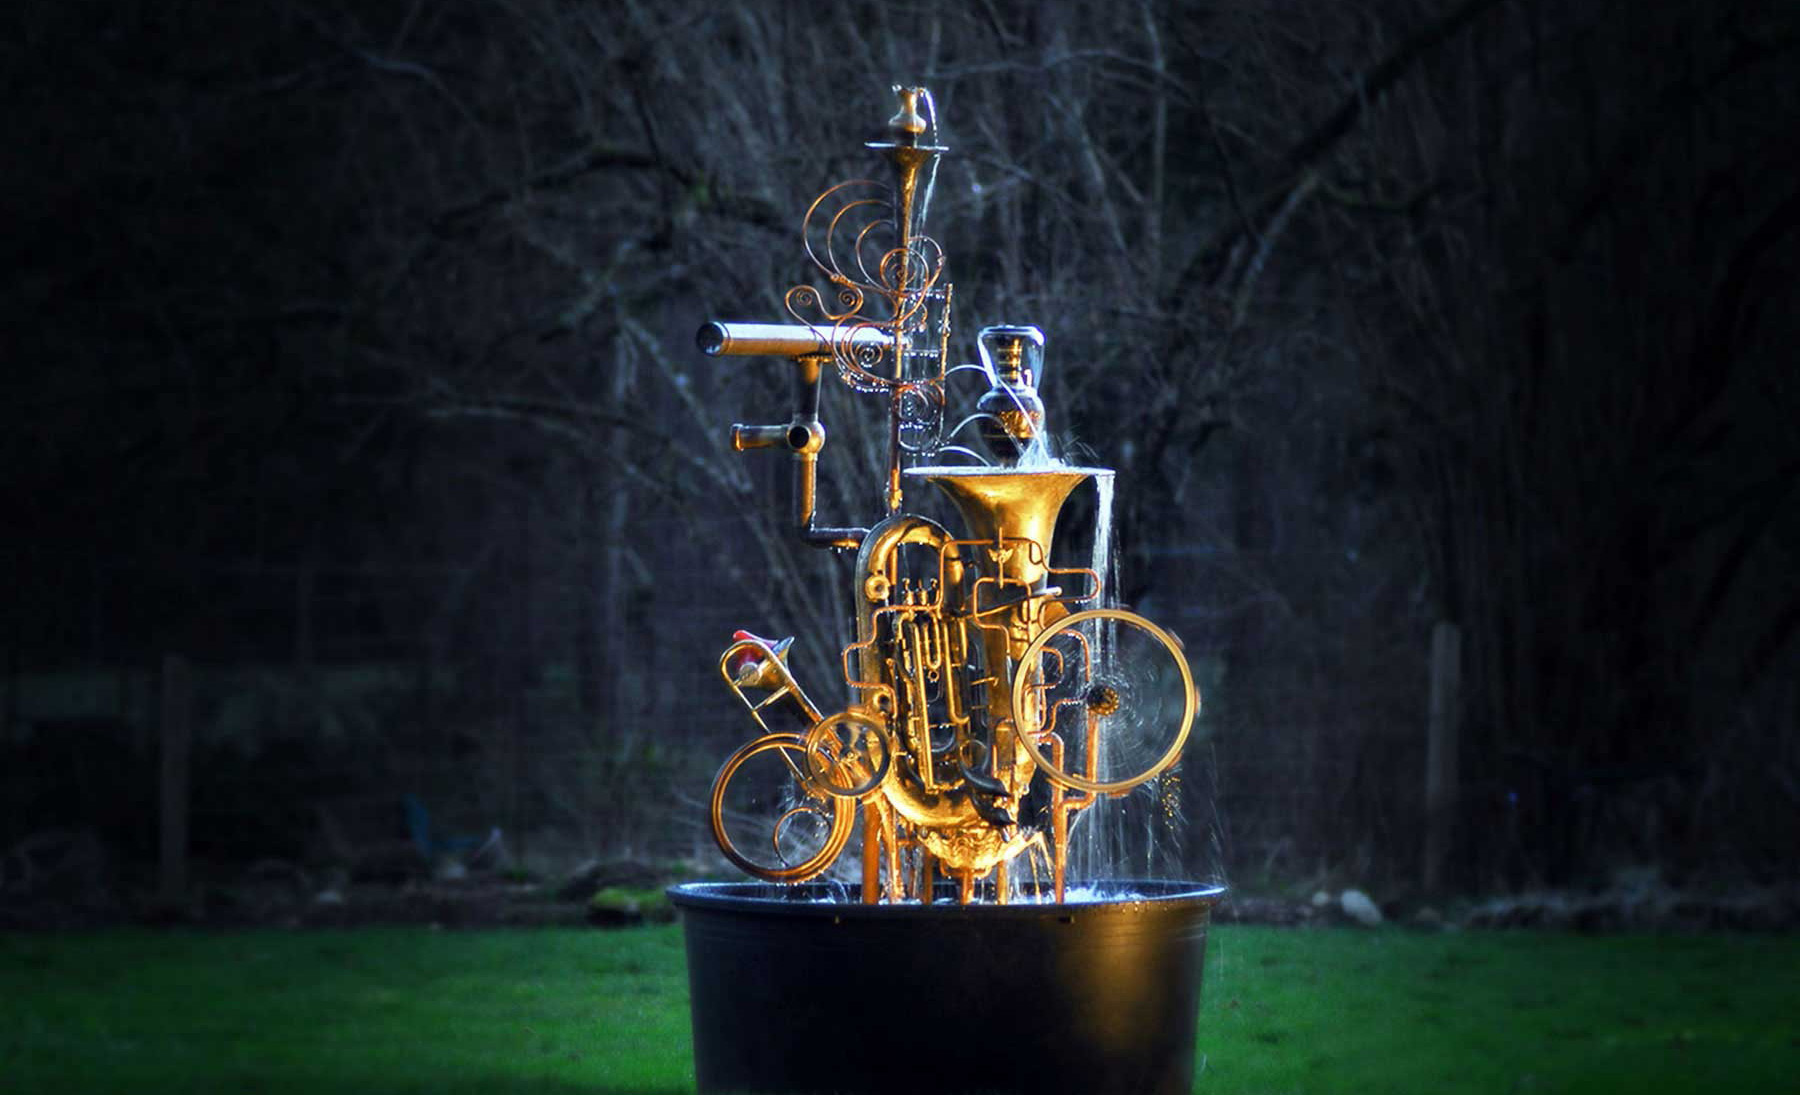 Garden art water fountains